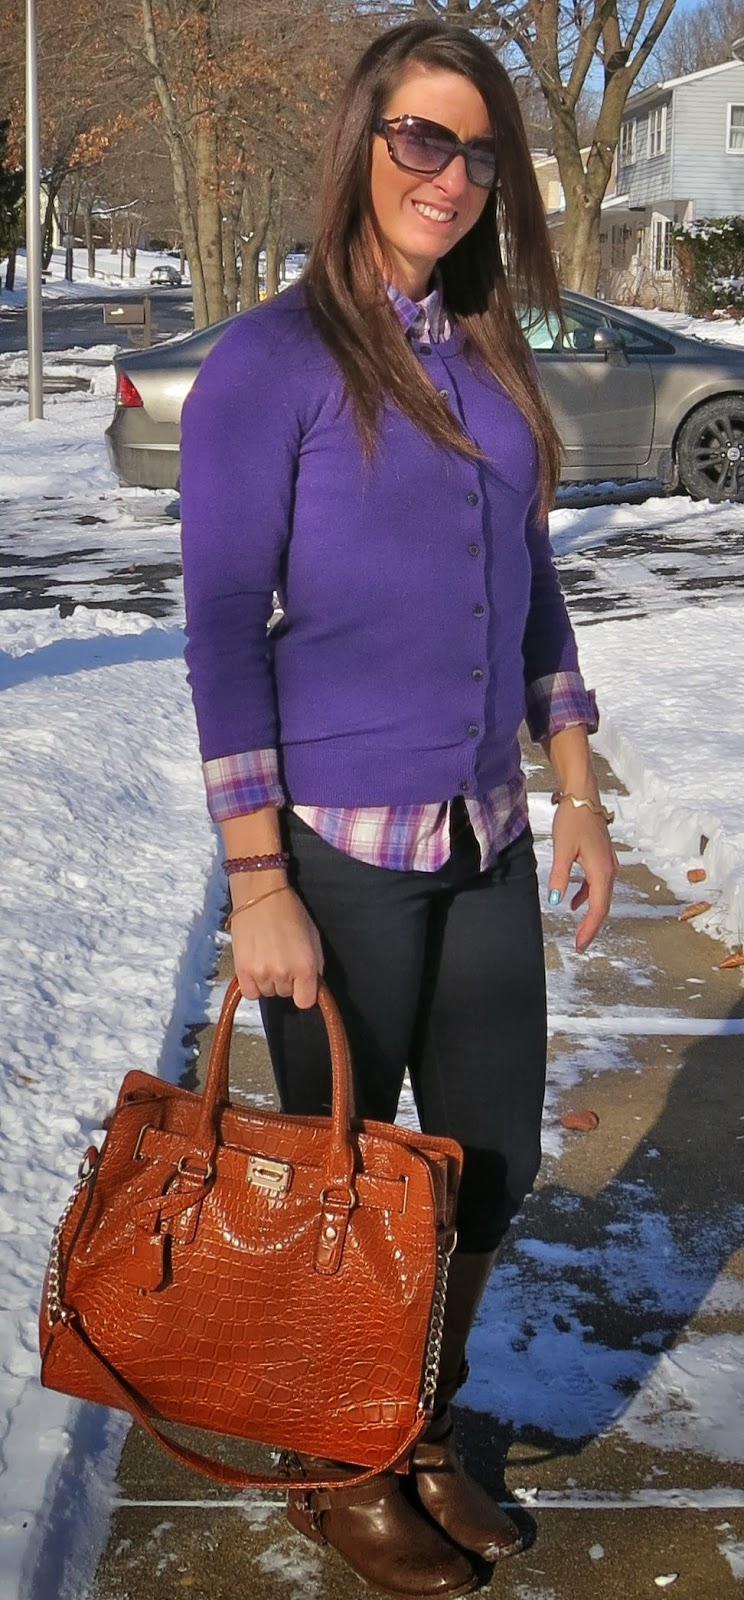 Boots, Fashion, layers, michael kors, ootd, Outfit Ideas, outfit of the day, Outfits, plaid, purple, what i wore, winter fashion,